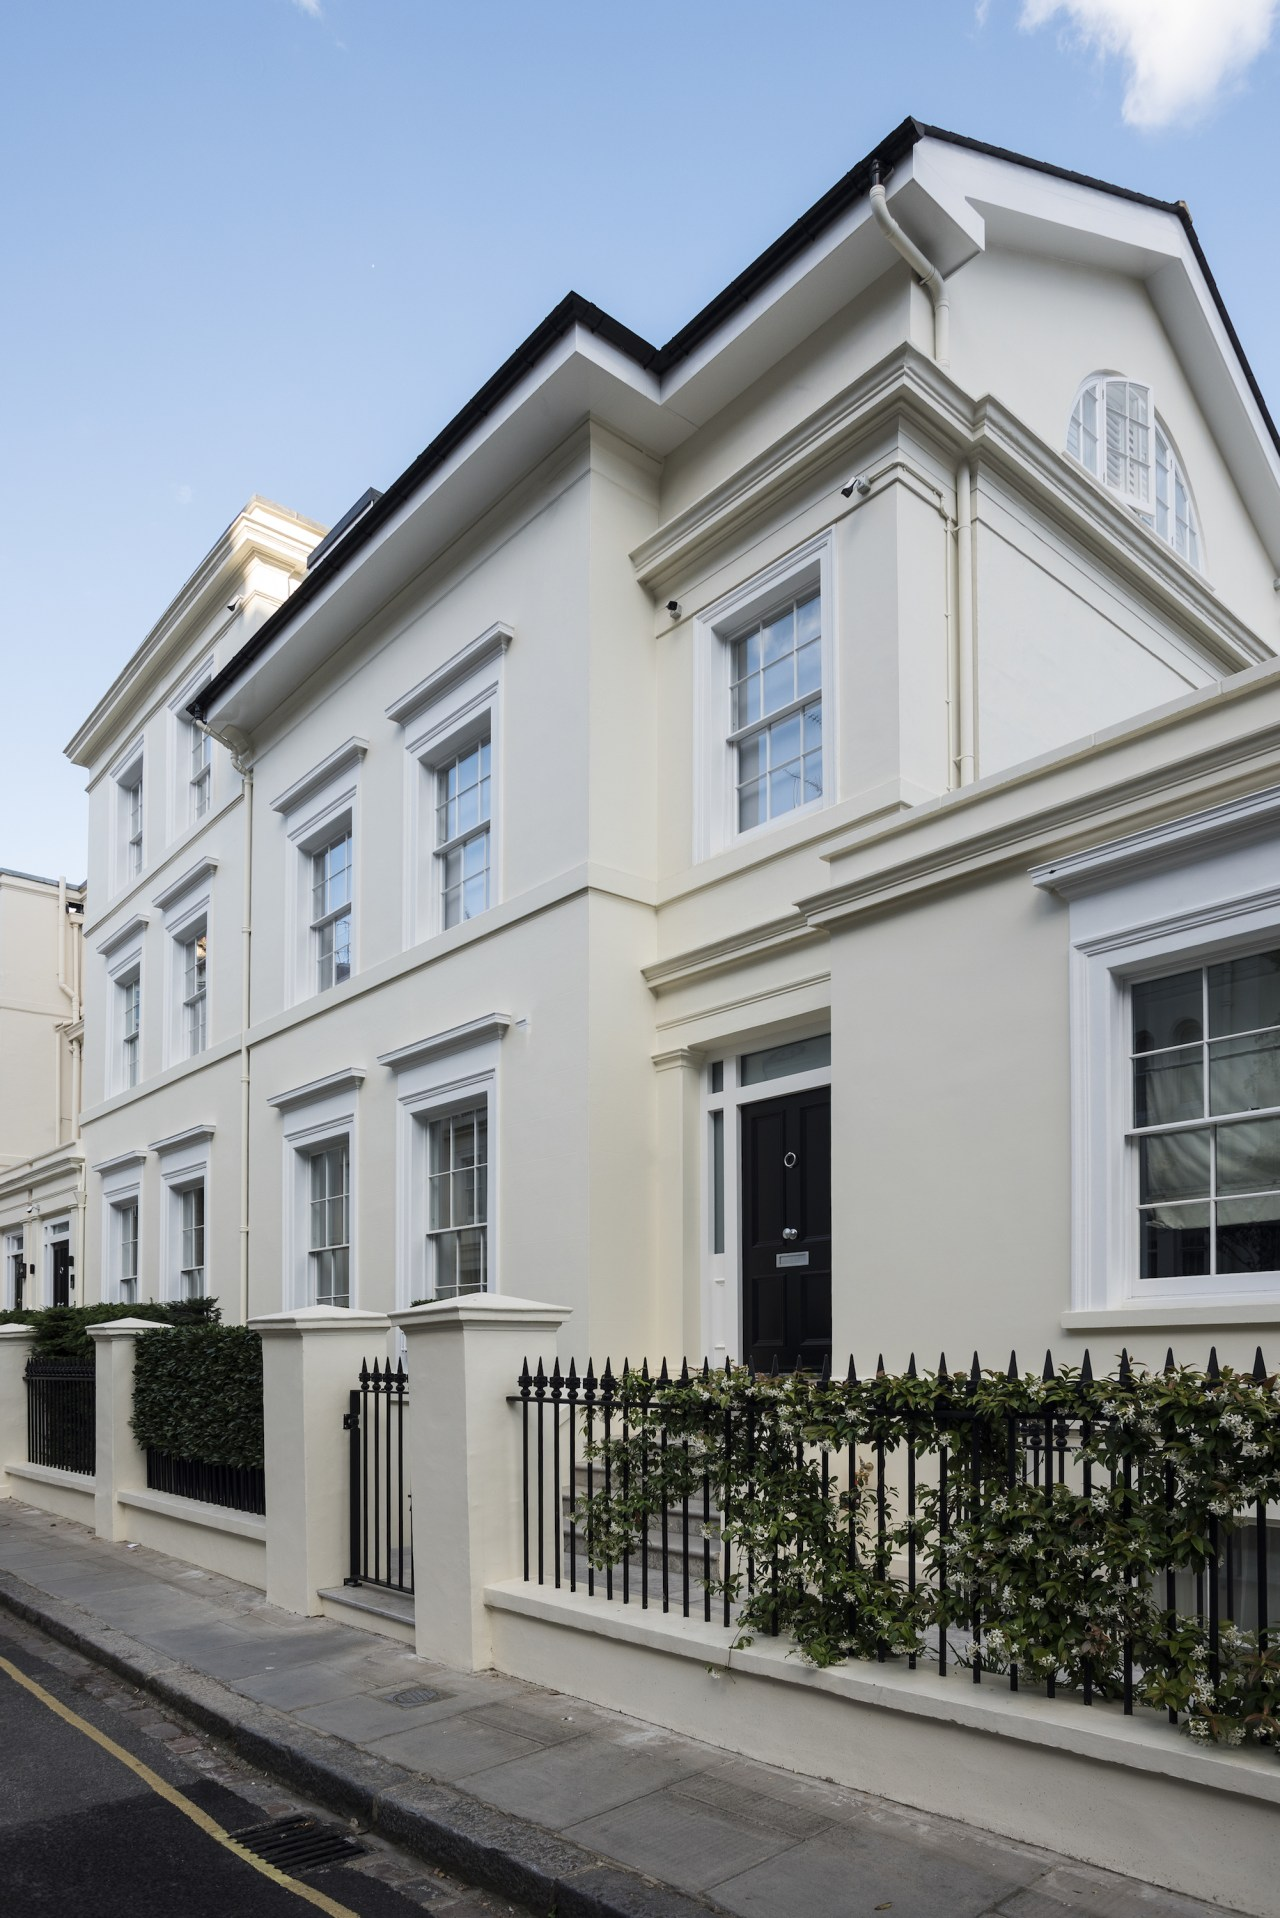 Traditional front doors to two townhouses in well-to-do